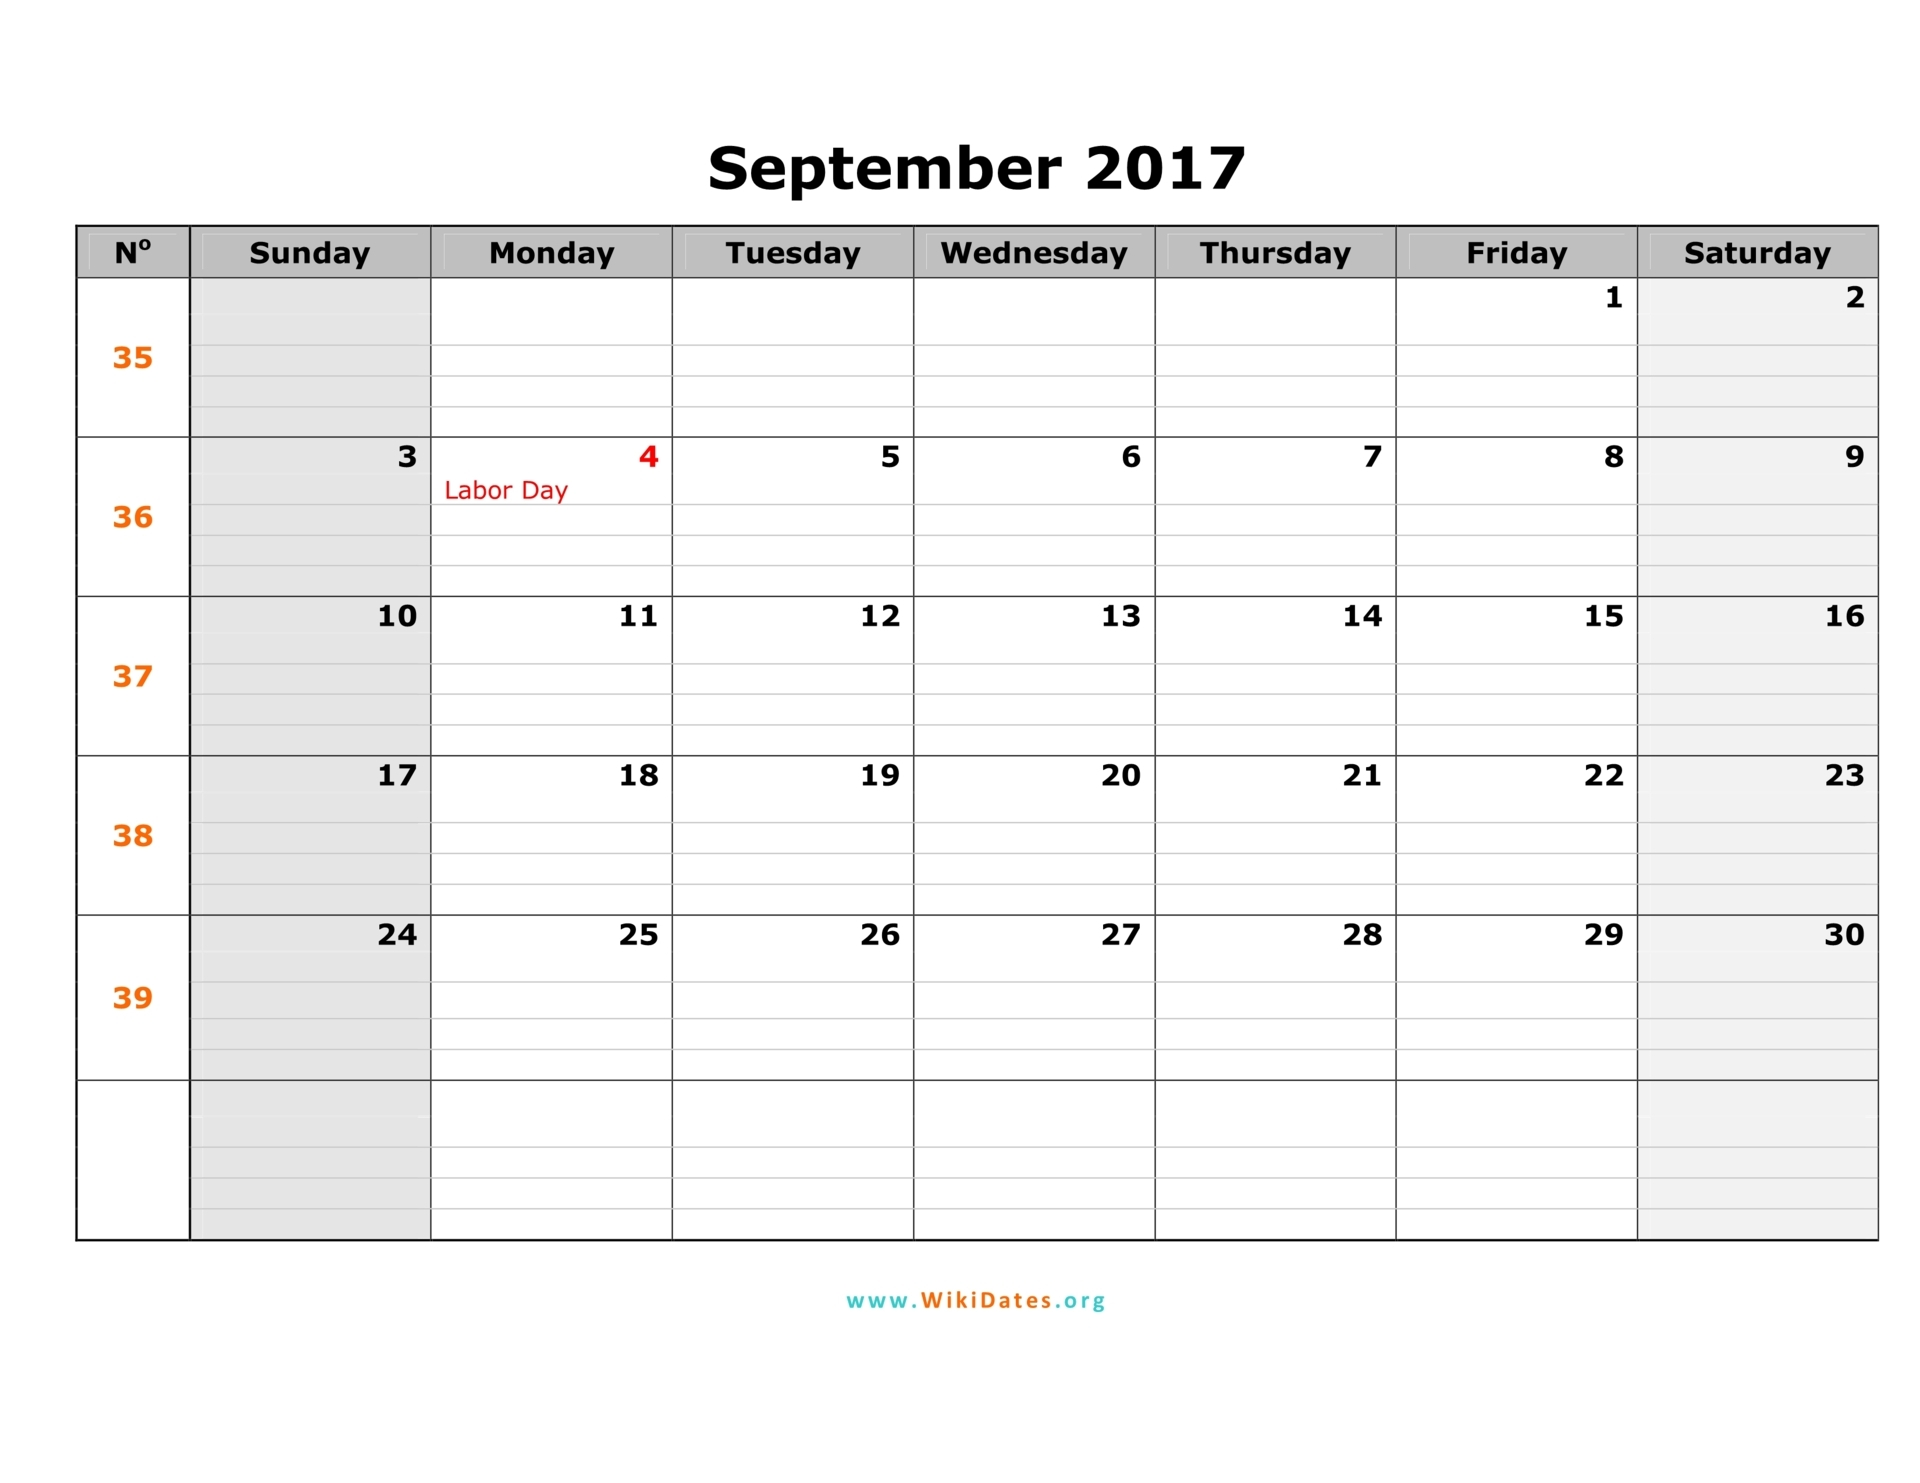 October 2017 calendar with notes